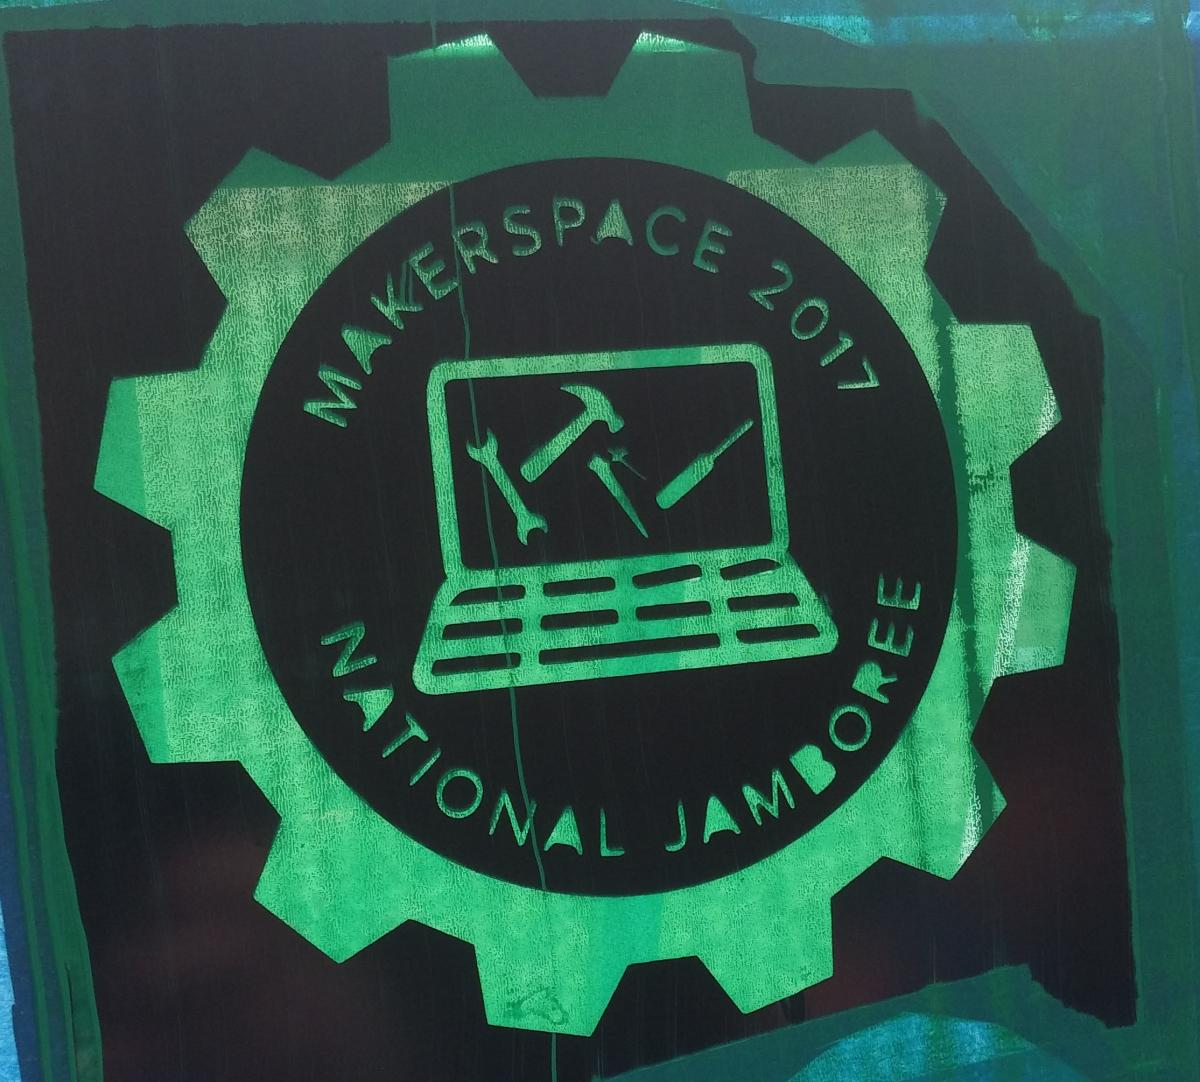 Makerspace Logo at National Jamboree